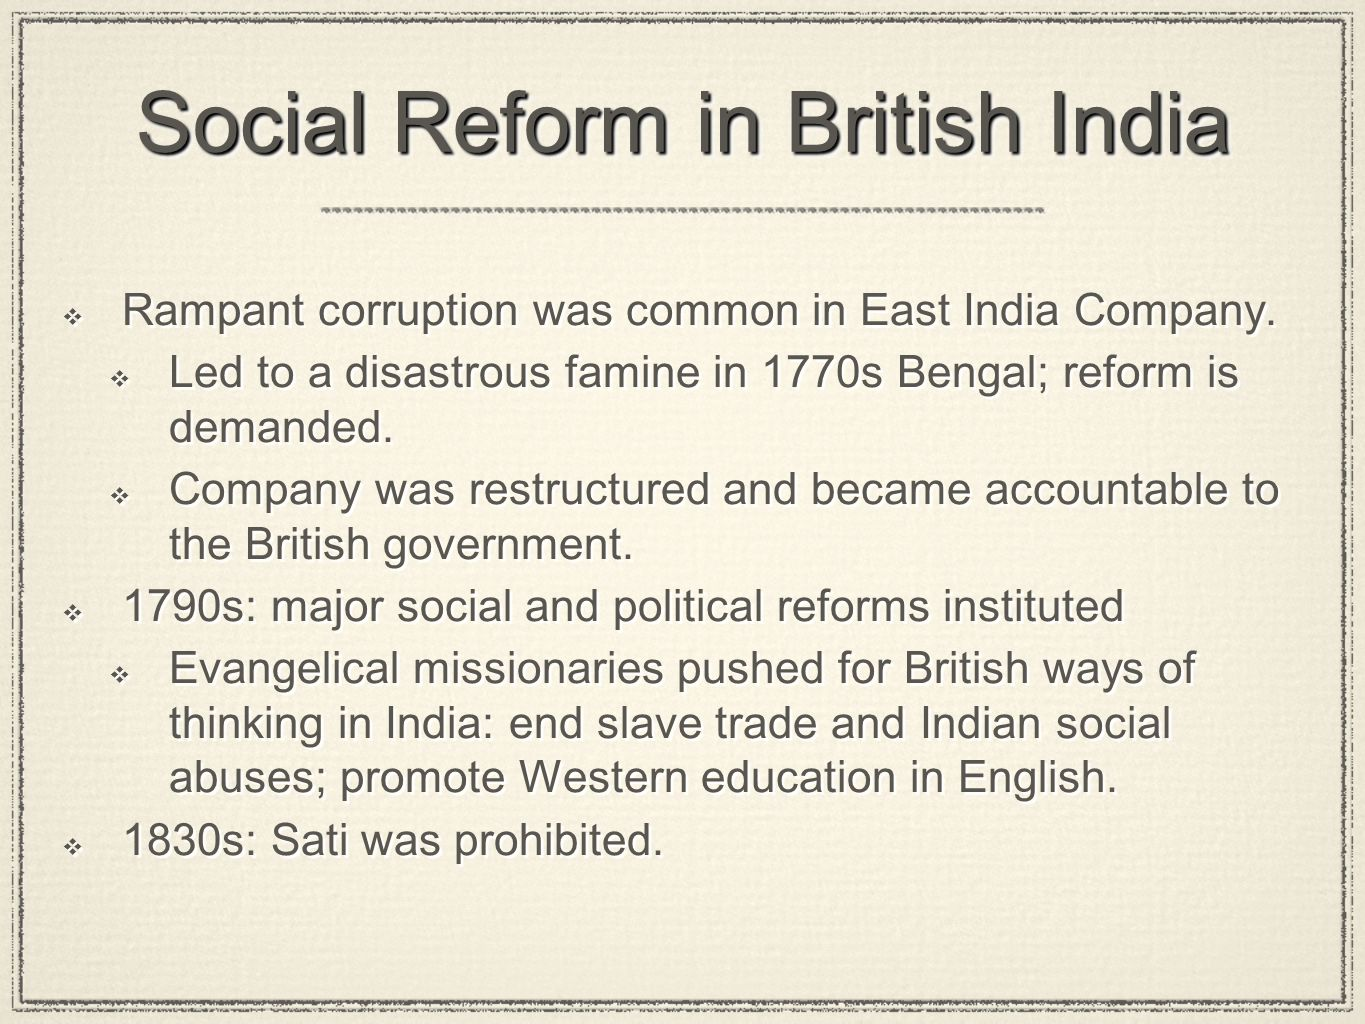 Social Reform in British India Rampant corruption was common in East India Company. Led to a disastrous famine in 1770s Bengal; reform is demanded. Co